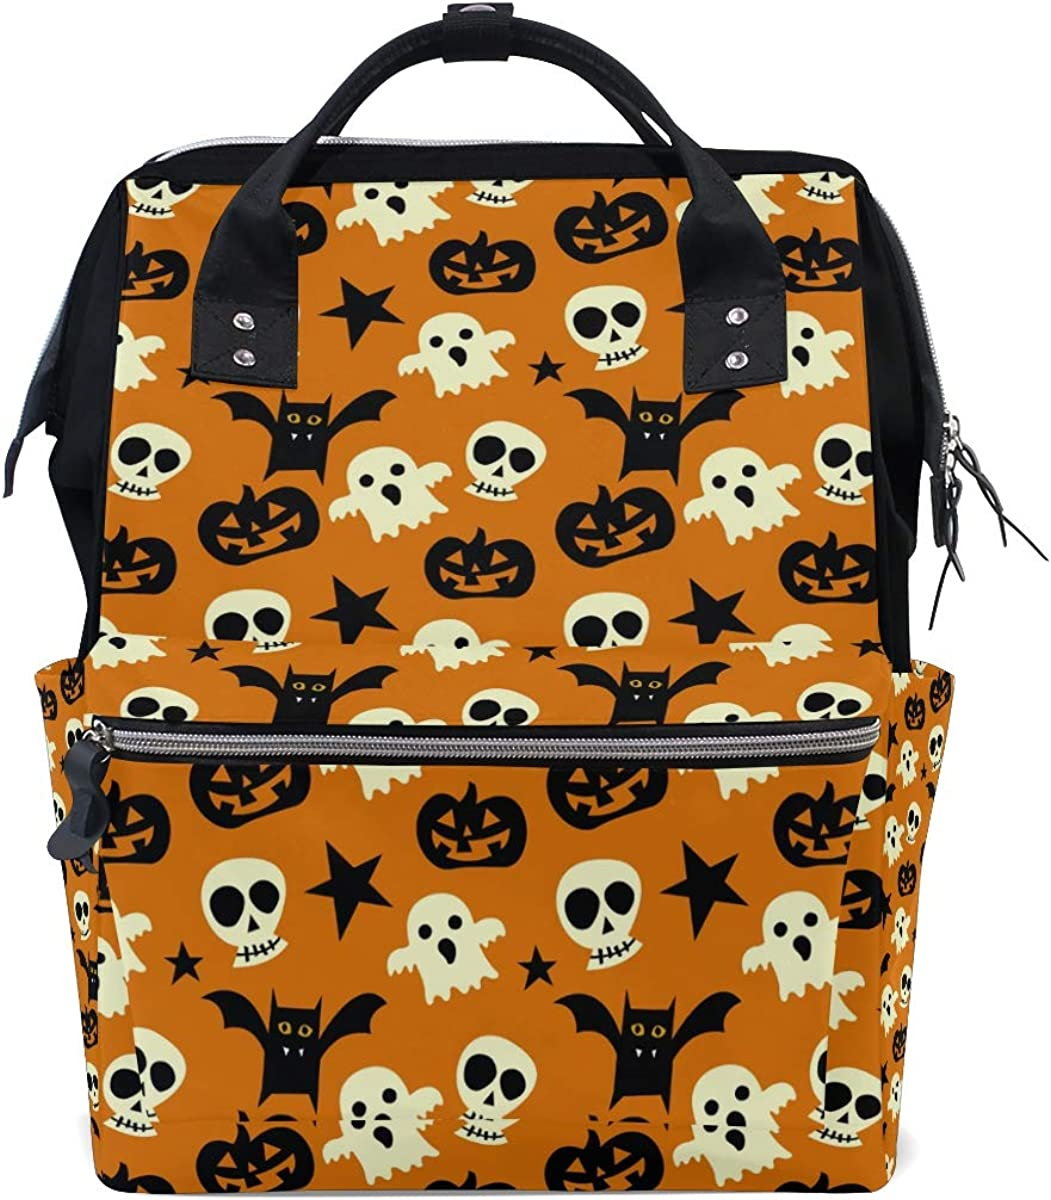 imobaby Halloween Spooky Pattern Changing Bags Large Capacity Handbags Canvas Shoulder Bag Backpack